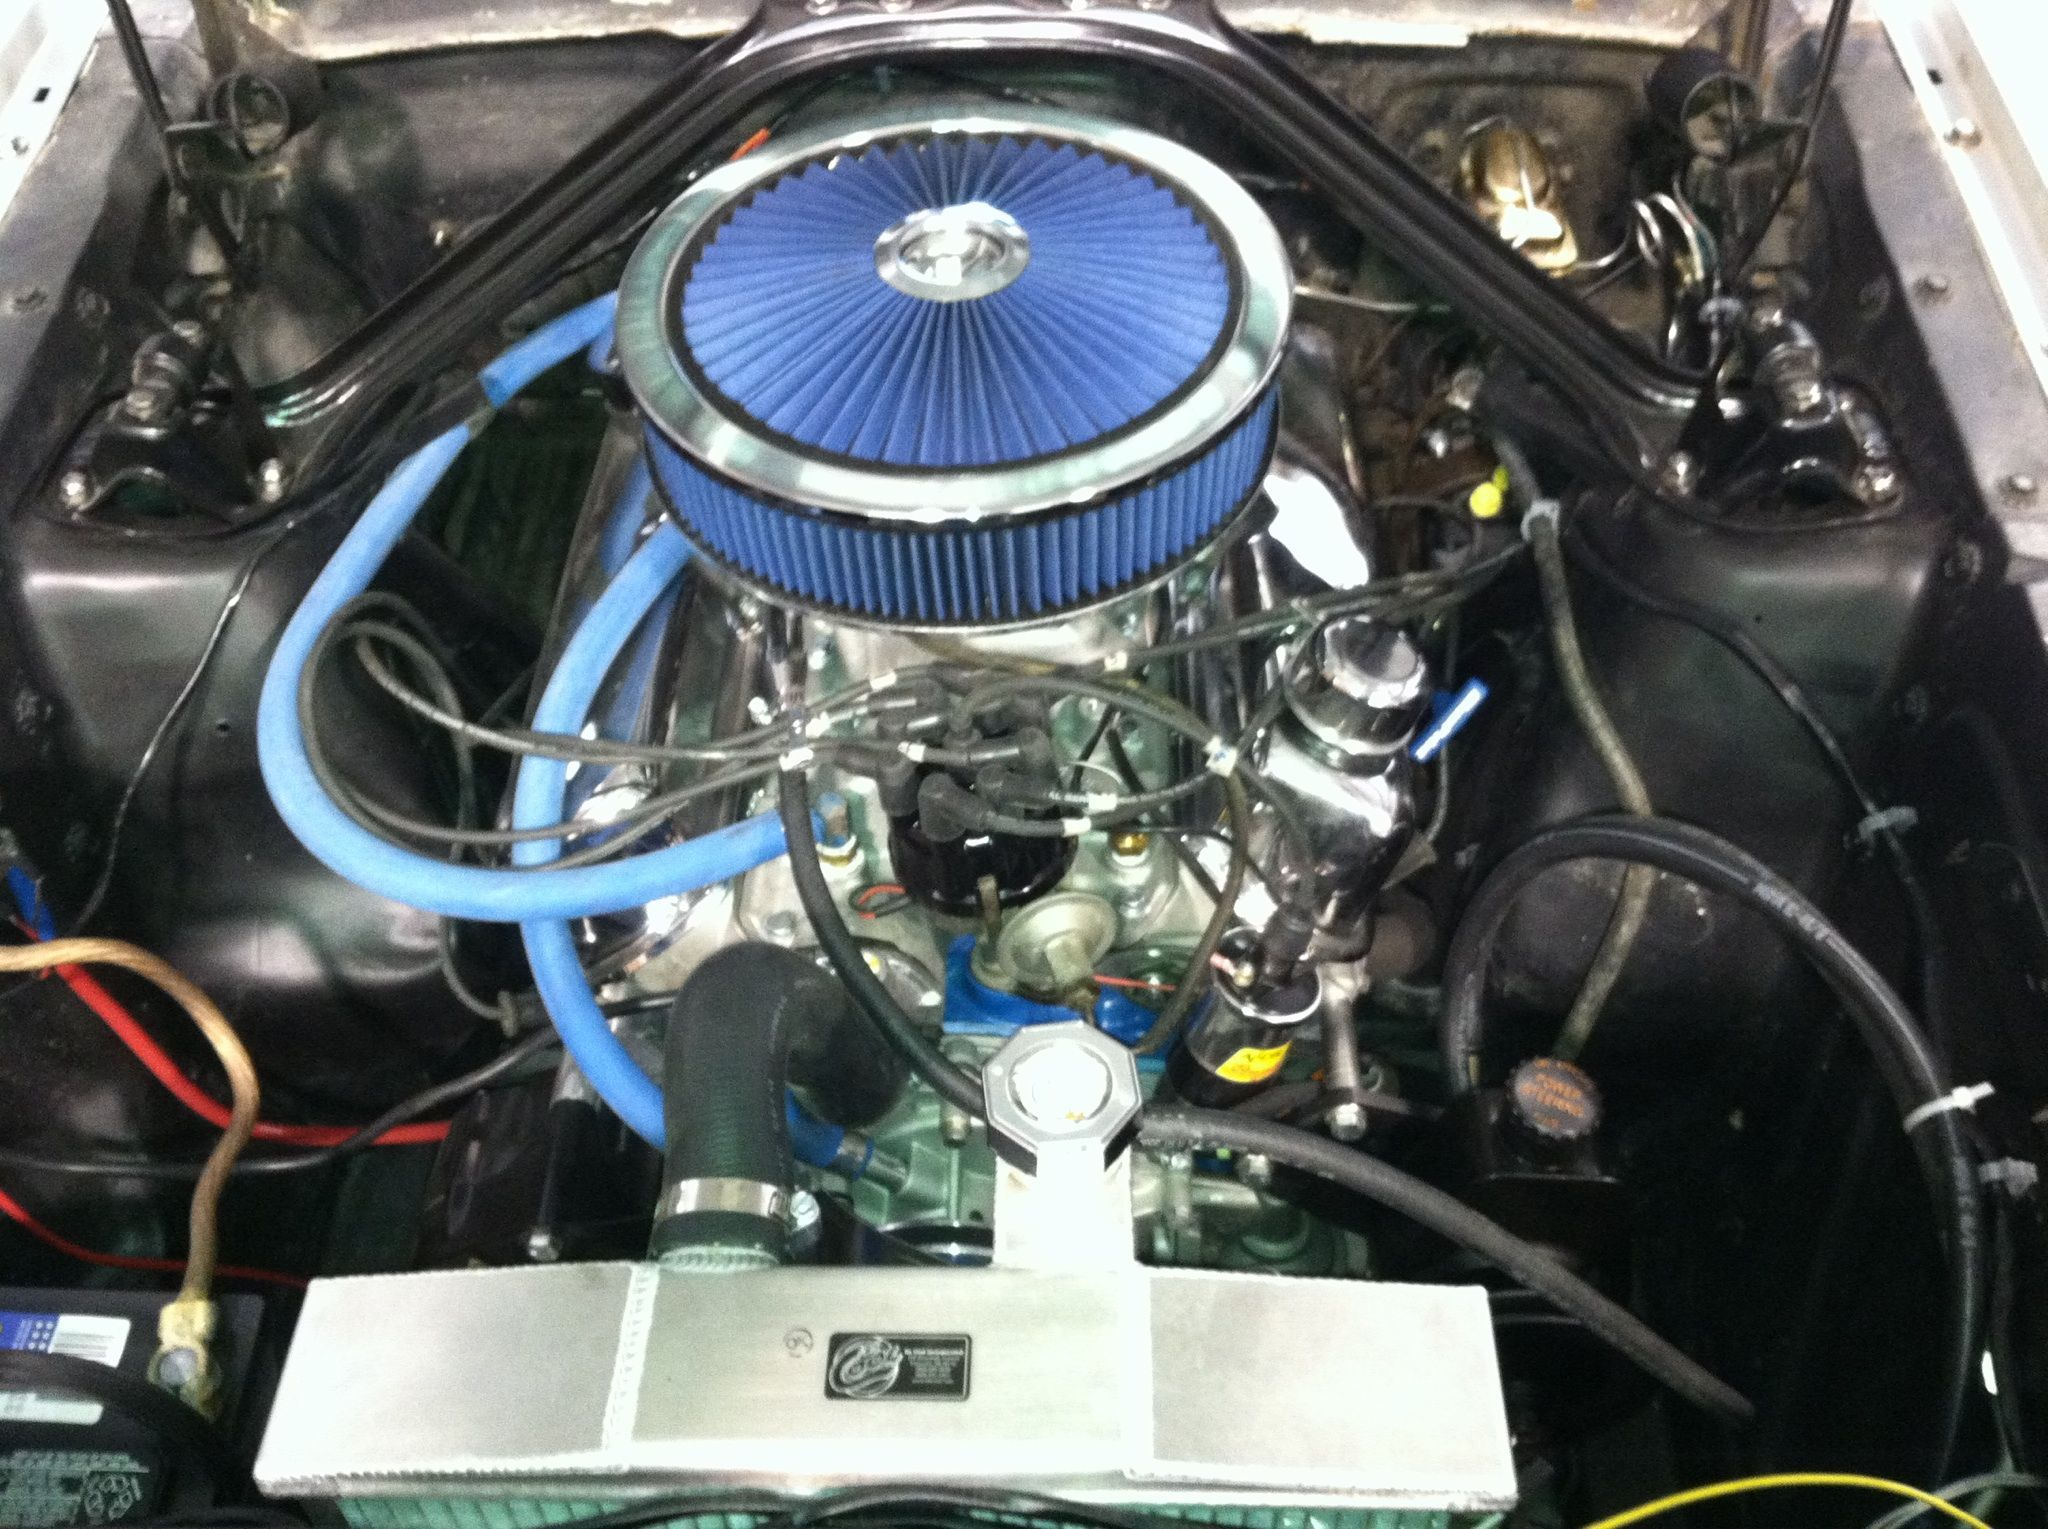 306ci crate engine small block ford style longblock aluminum blueprint engines customers james cassidy beierle have installed the bp3060ct into this 1965 ford mustang for more information on the full line of malvernweather Images